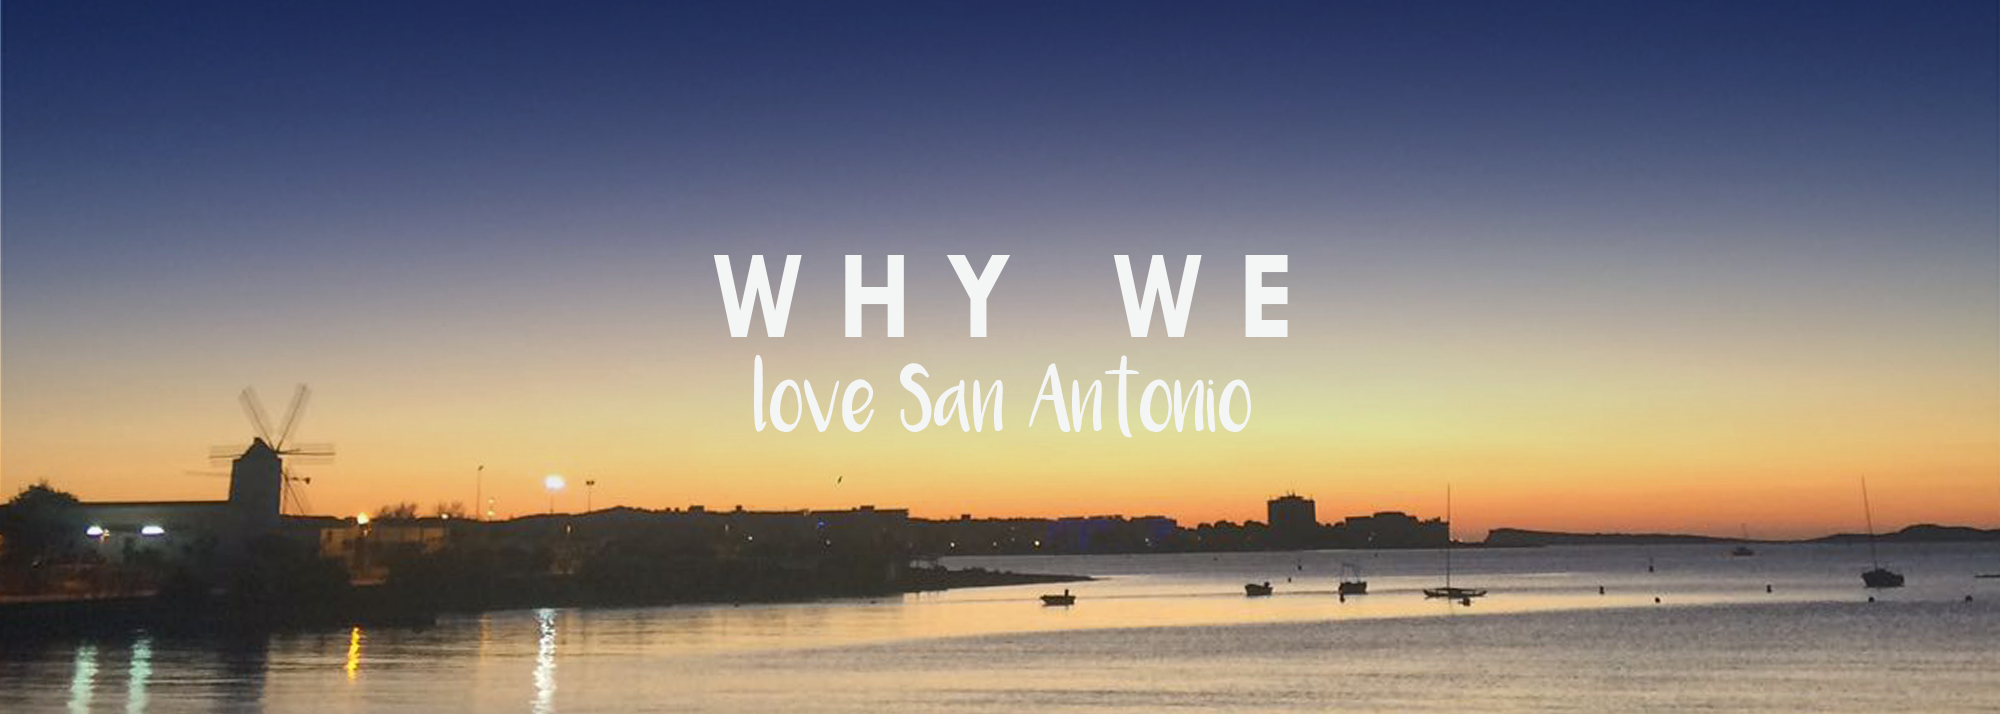 Why We Love San Antonio!